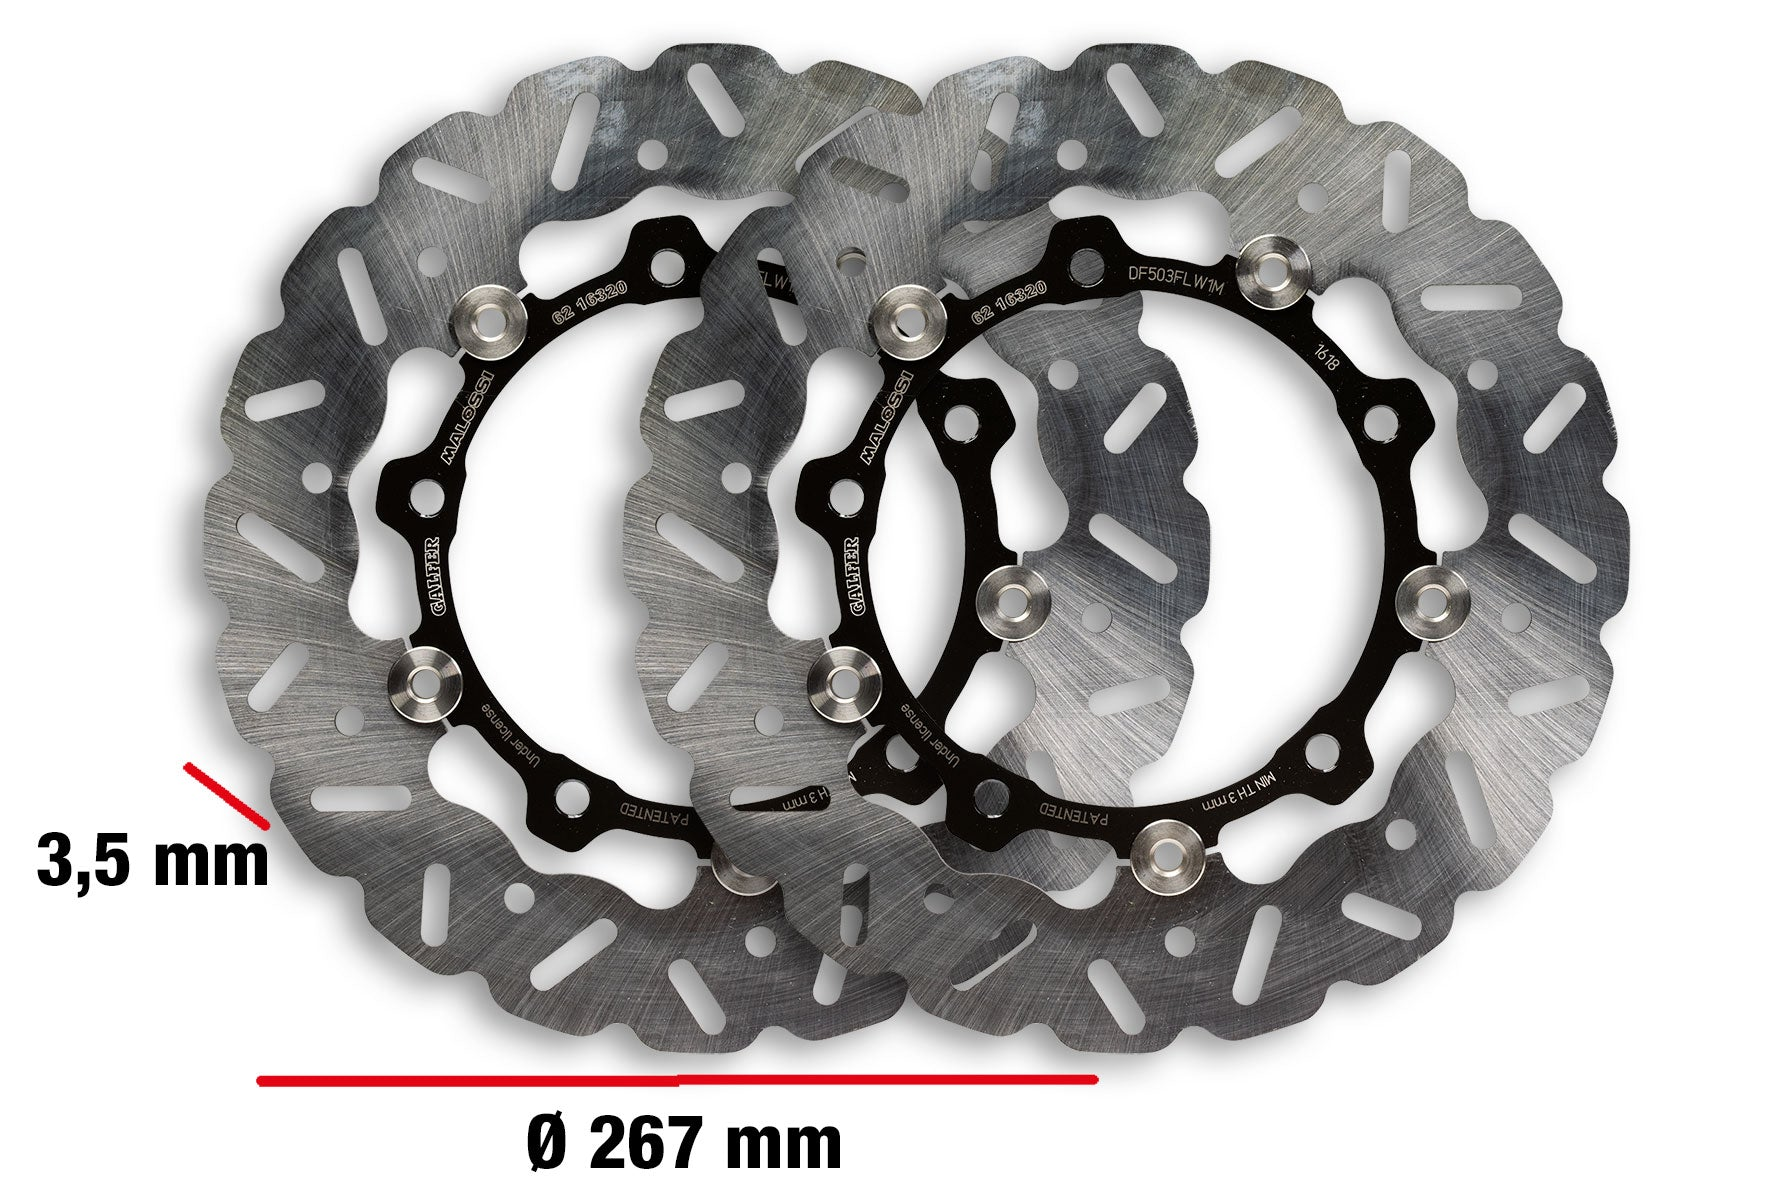 Malossi Front rotor kit for TMAX